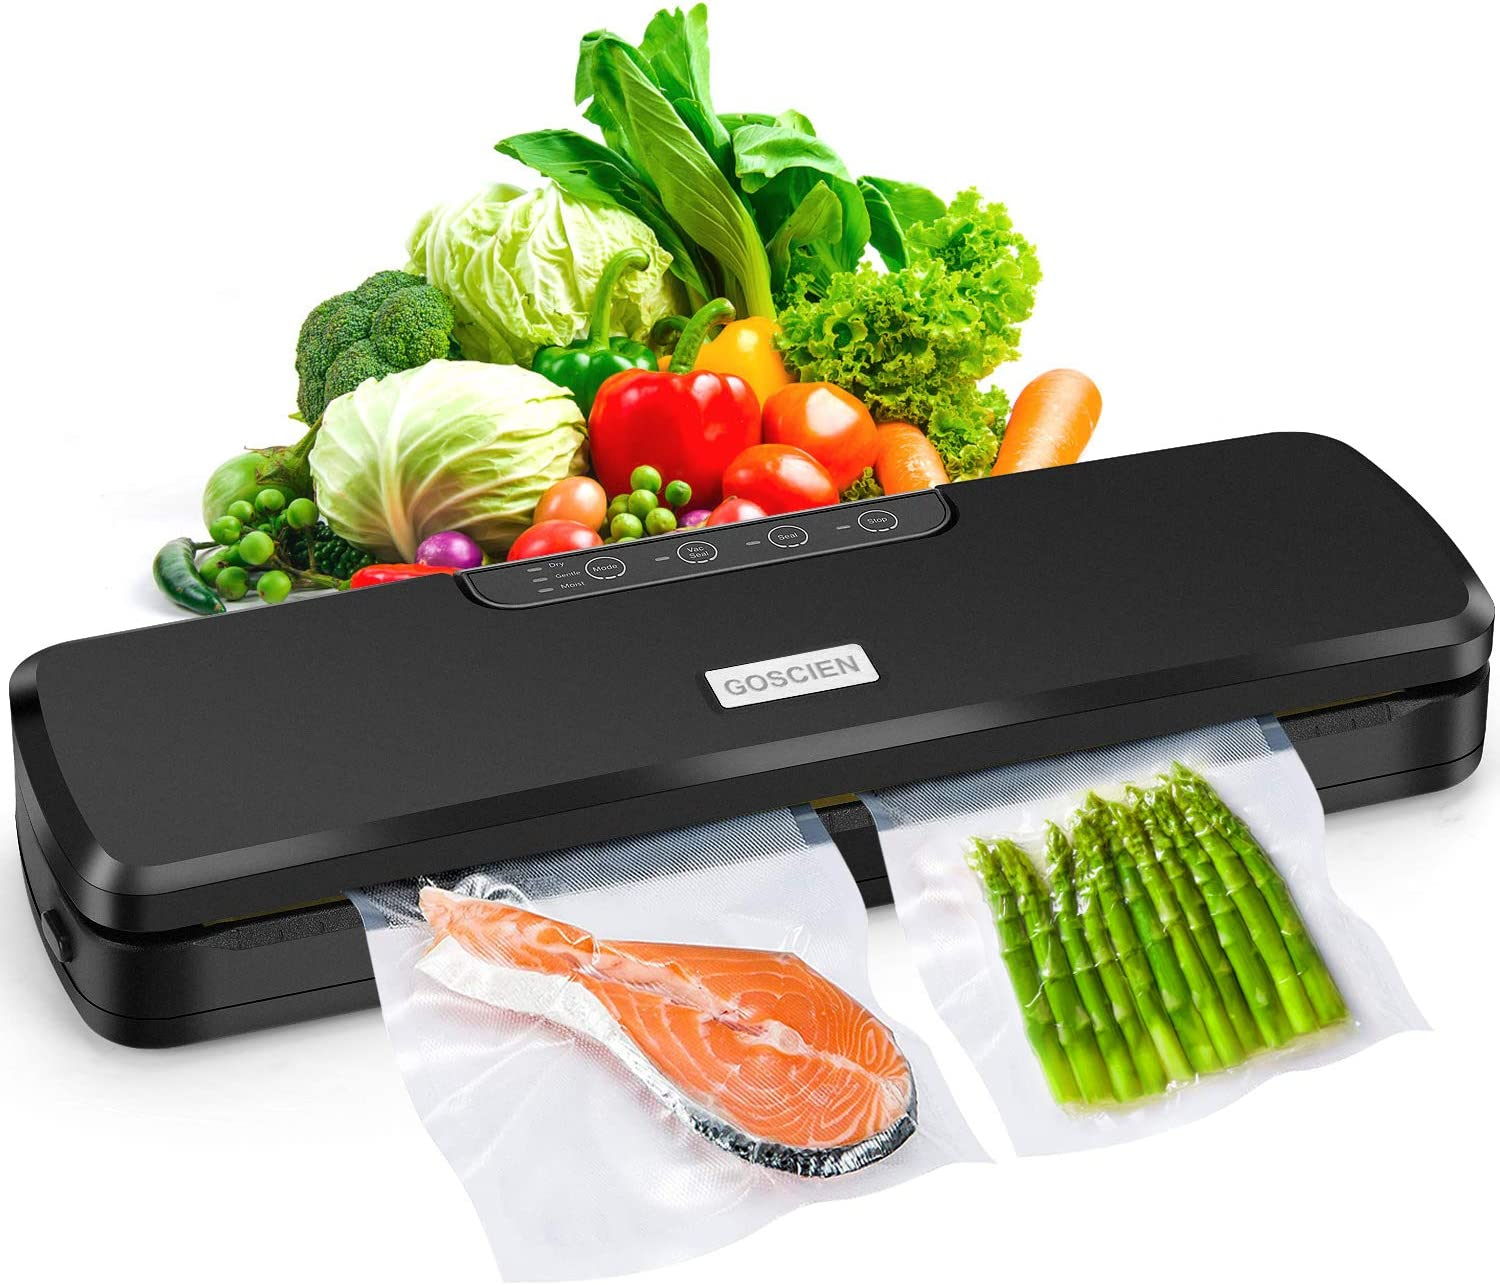 GOSCIEN Vacuum Sealer, Automatic Food Sealer for Food Savers, Dry & Moist Food Modes, Led Indicator Lights, Built-in Cutter, Starter Kit with 10 PCS Vacuum Bags